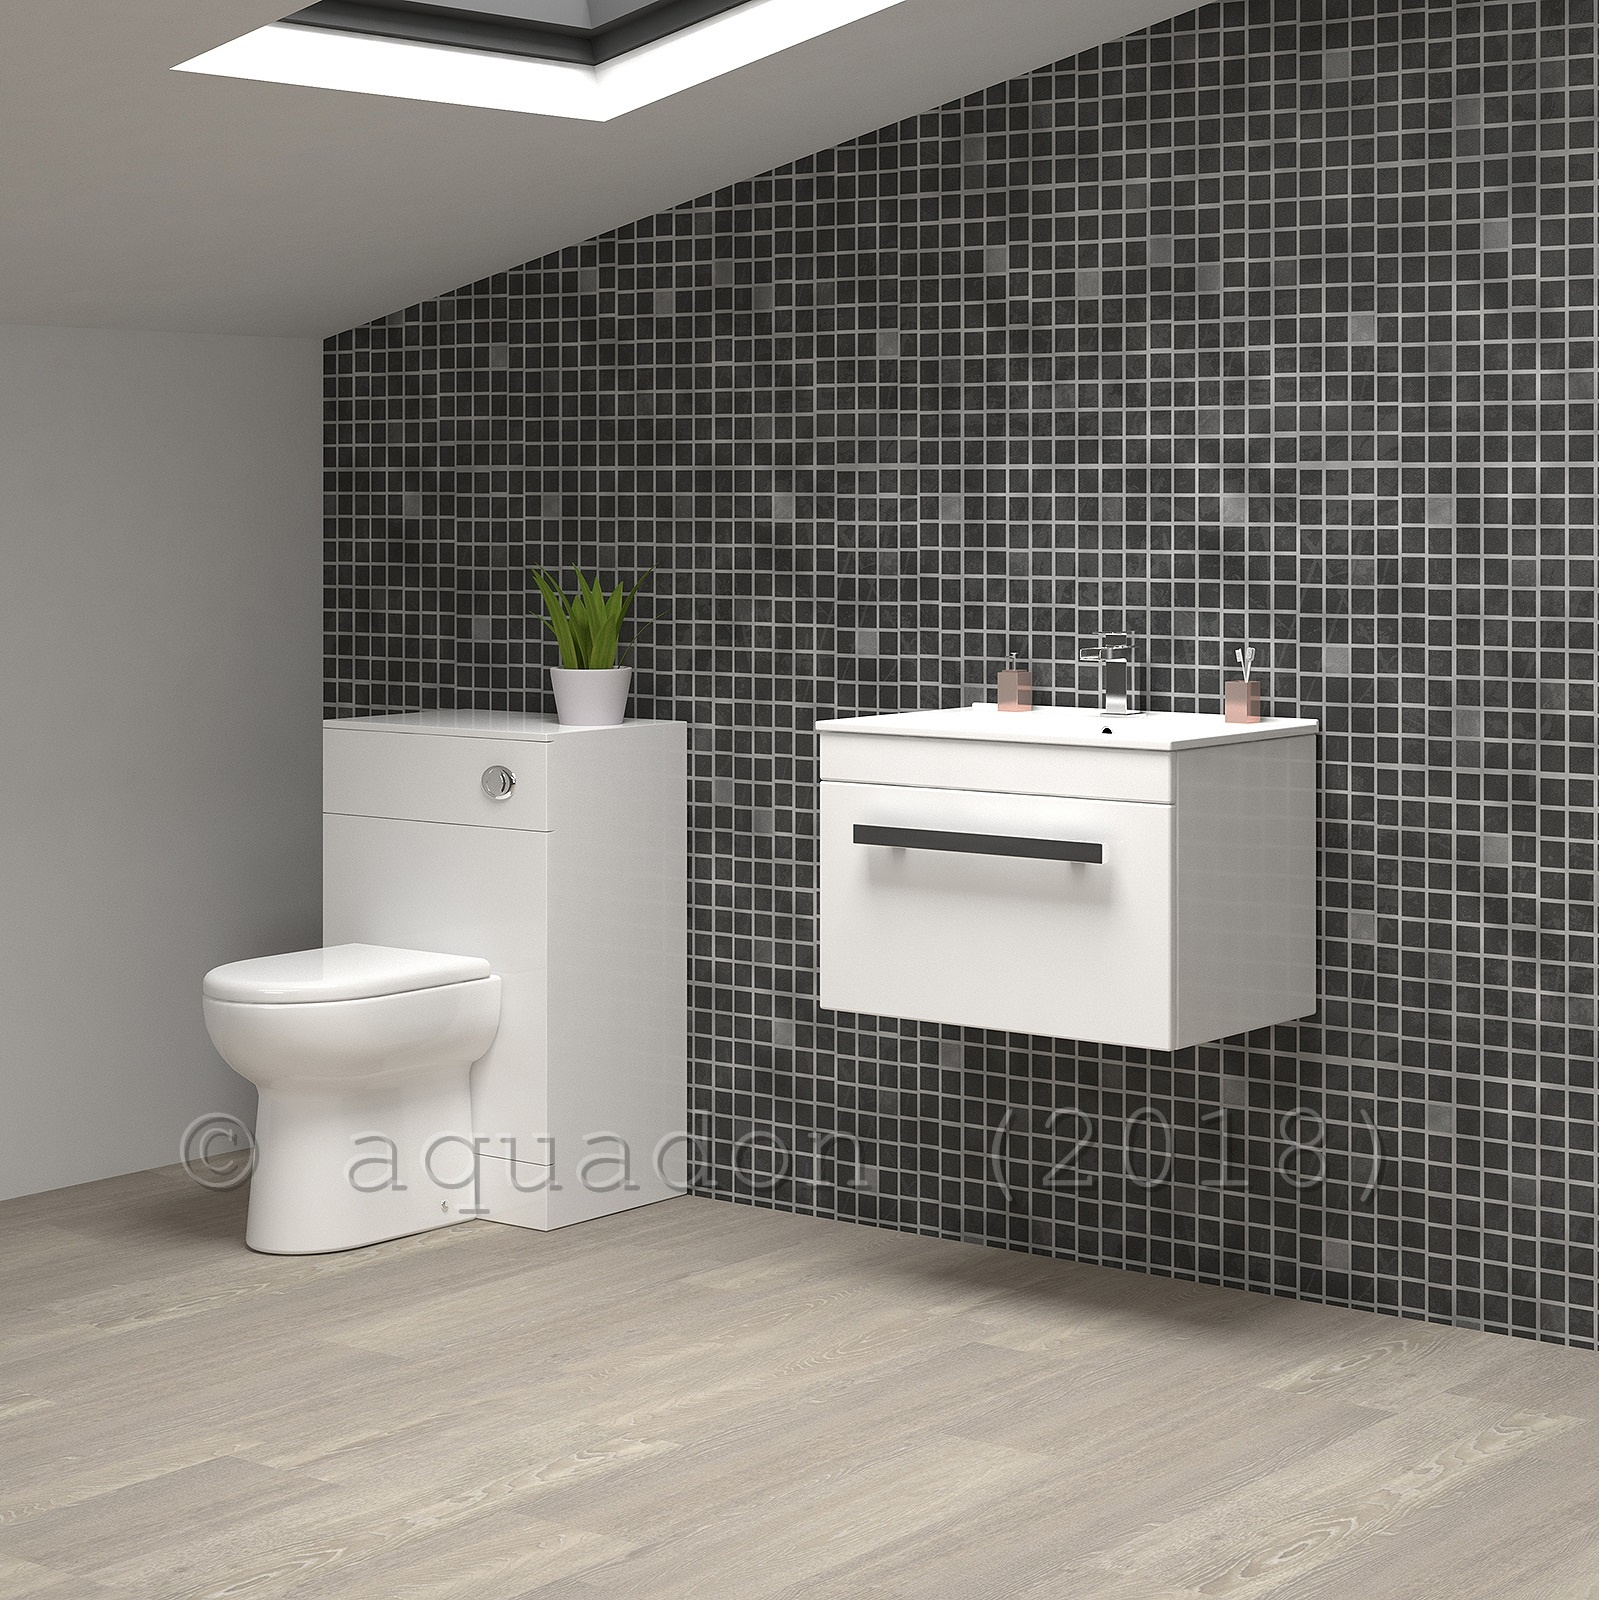 Bathroom Vanity Not Flush Against Wall Decorating Interior Of Your